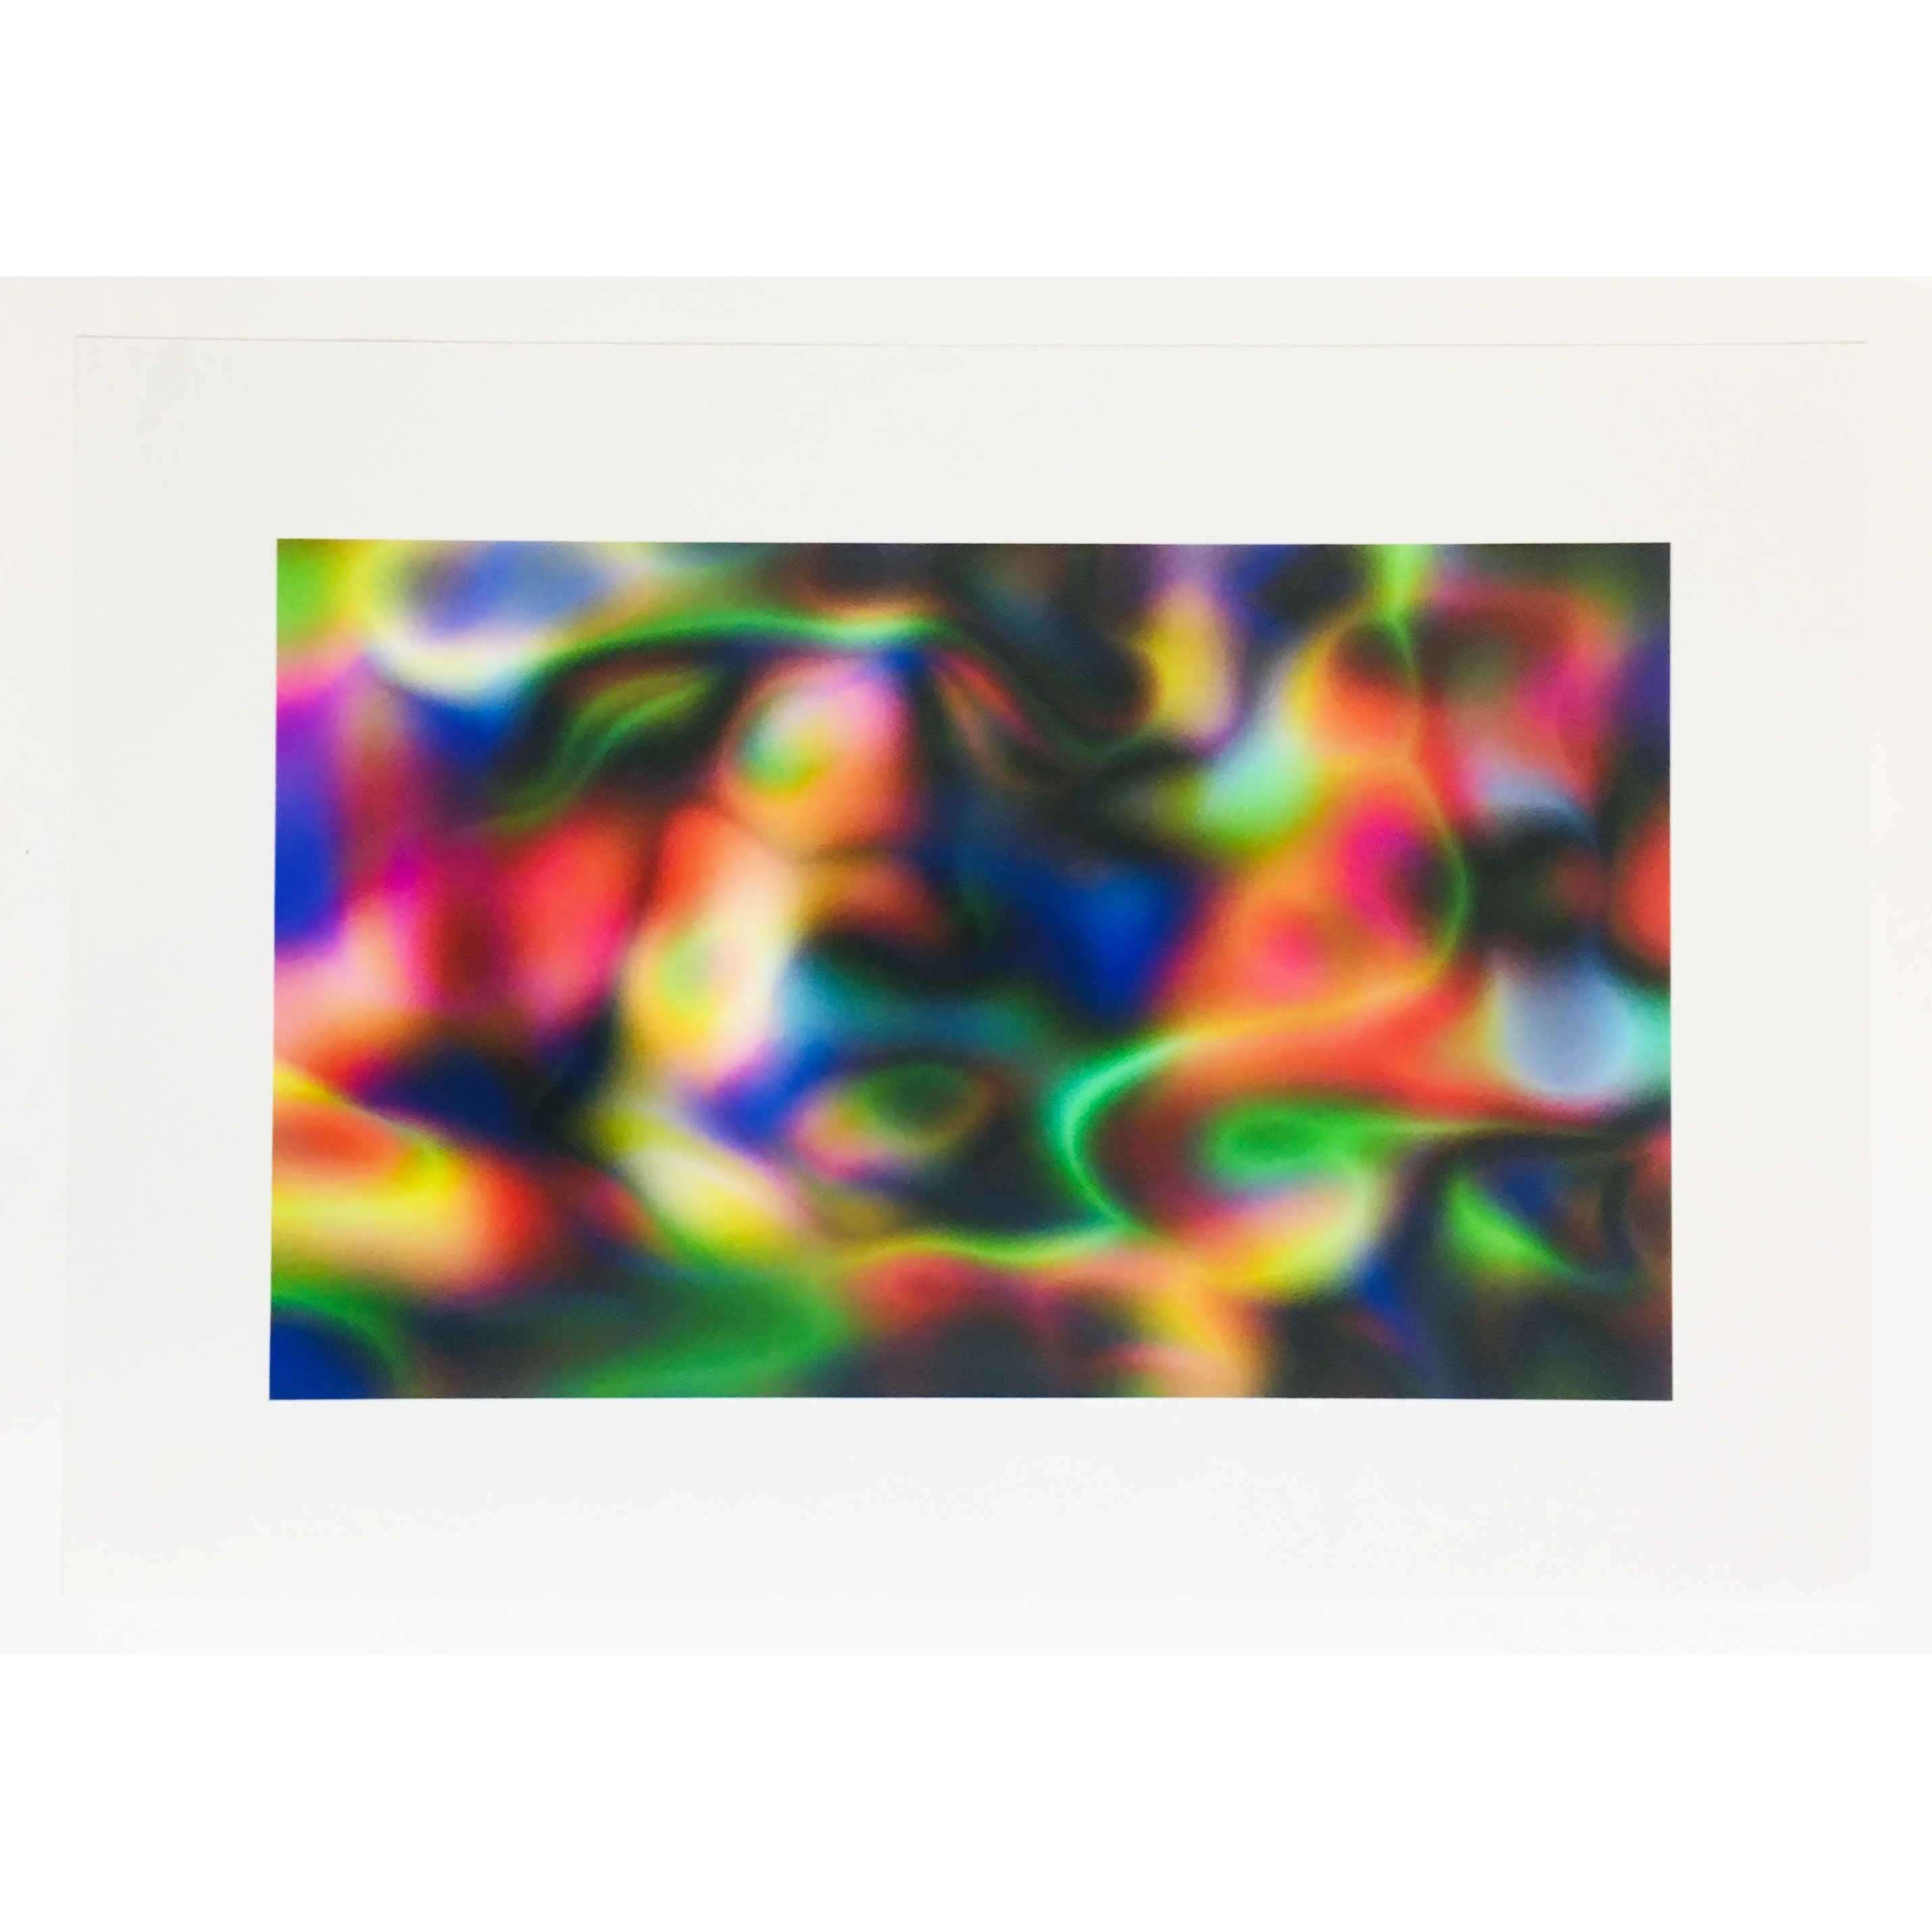 Thomas Ruff, Substrat 21 III 2003/19, 2019 | Lougher Contemporary